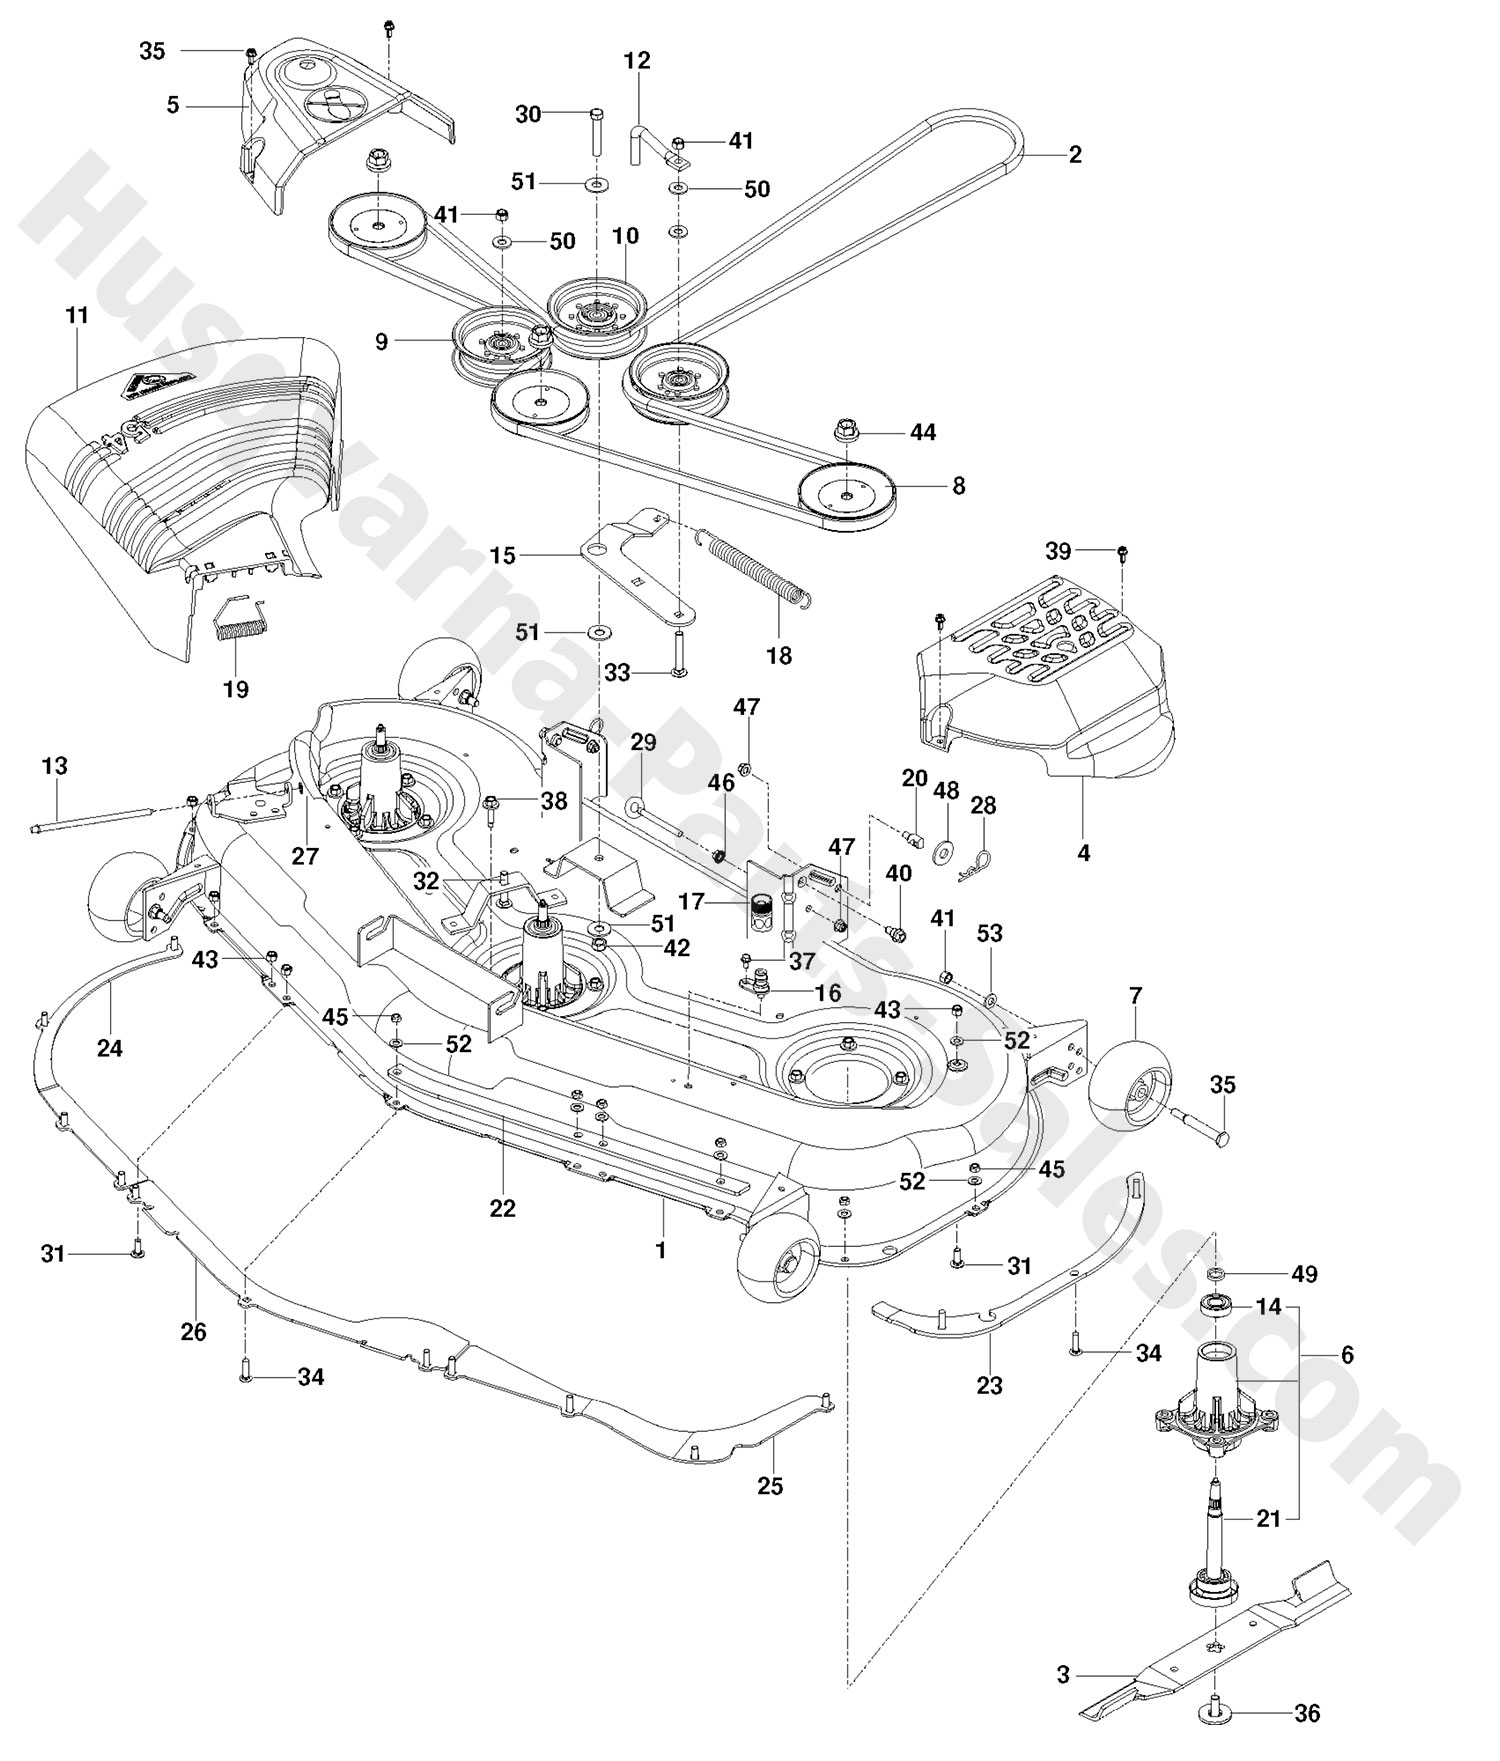 Rz 5424 Wiring Diagram Auto Electrical Husqvarna Tractor Rider 155 Echo